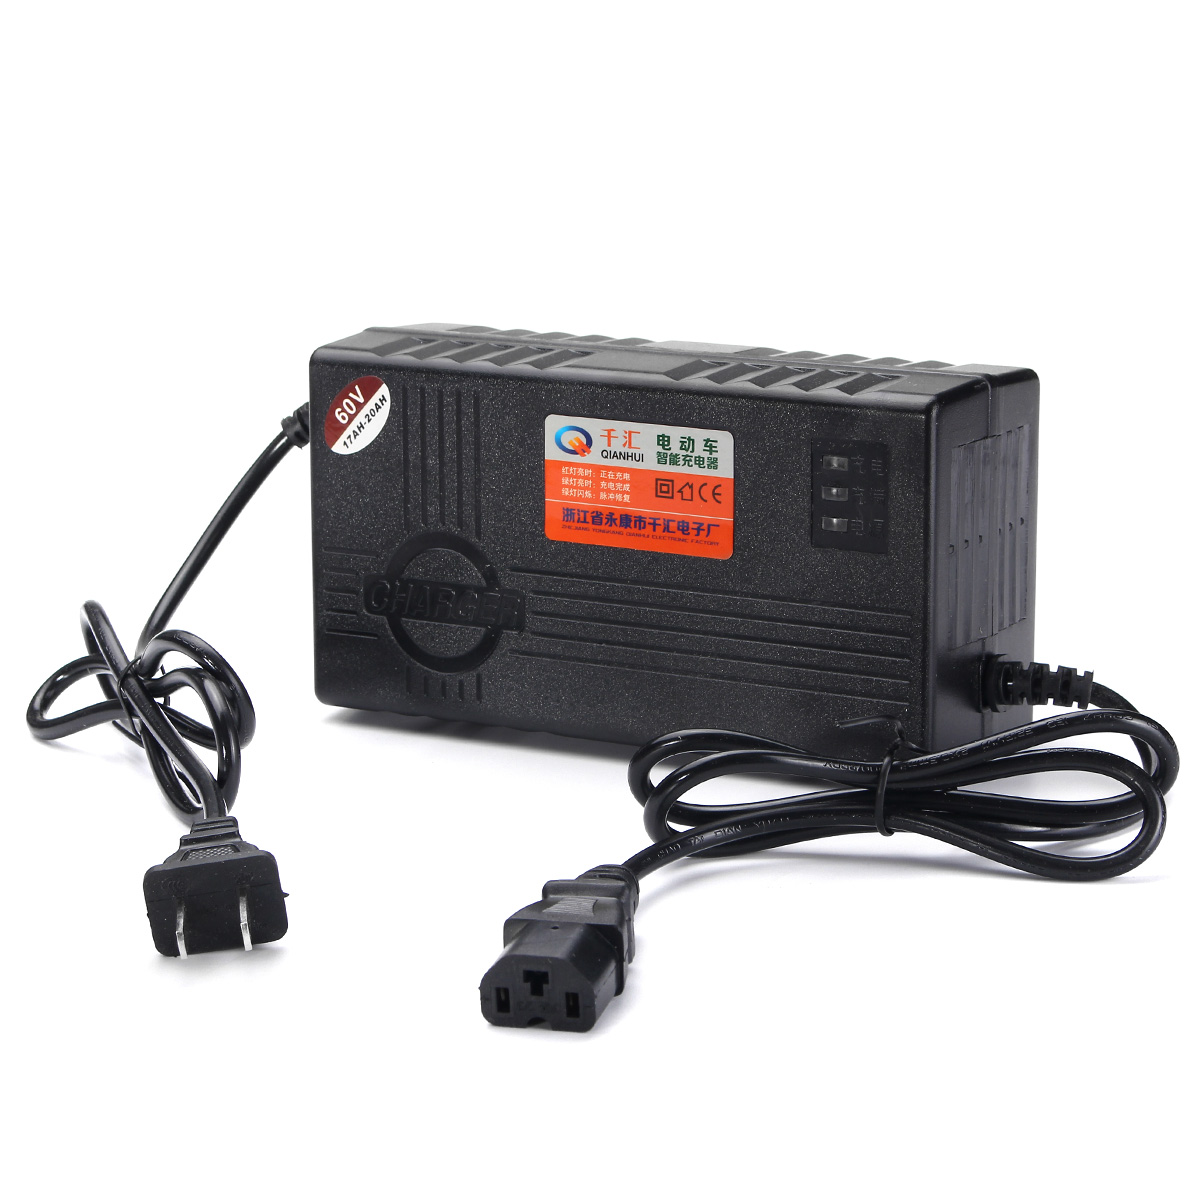 60V 20AH Battery Charger For Scooter Wheel Electric Bicycle E-bike Lead Acid Battery LED Display Smart Electric Car Charger